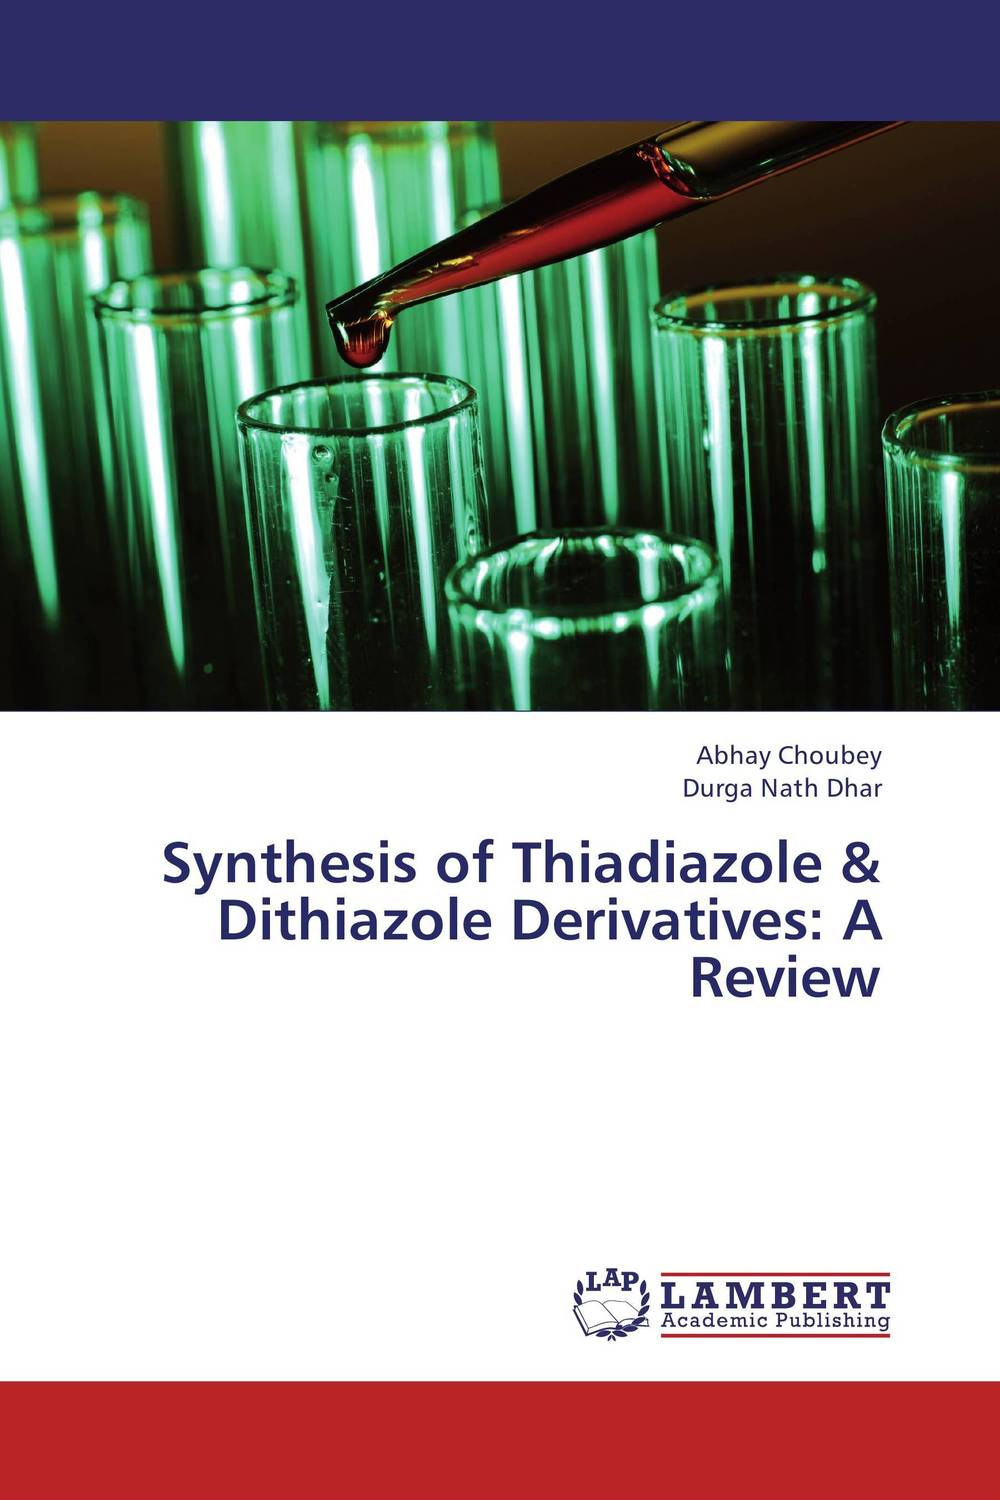 Synthesis of Thiadiazole & Dithiazole Derivatives: A Review nagat abady adel el gendy and mohamed mokhtar synthesis of certain indole 2 carboxylate derivatives